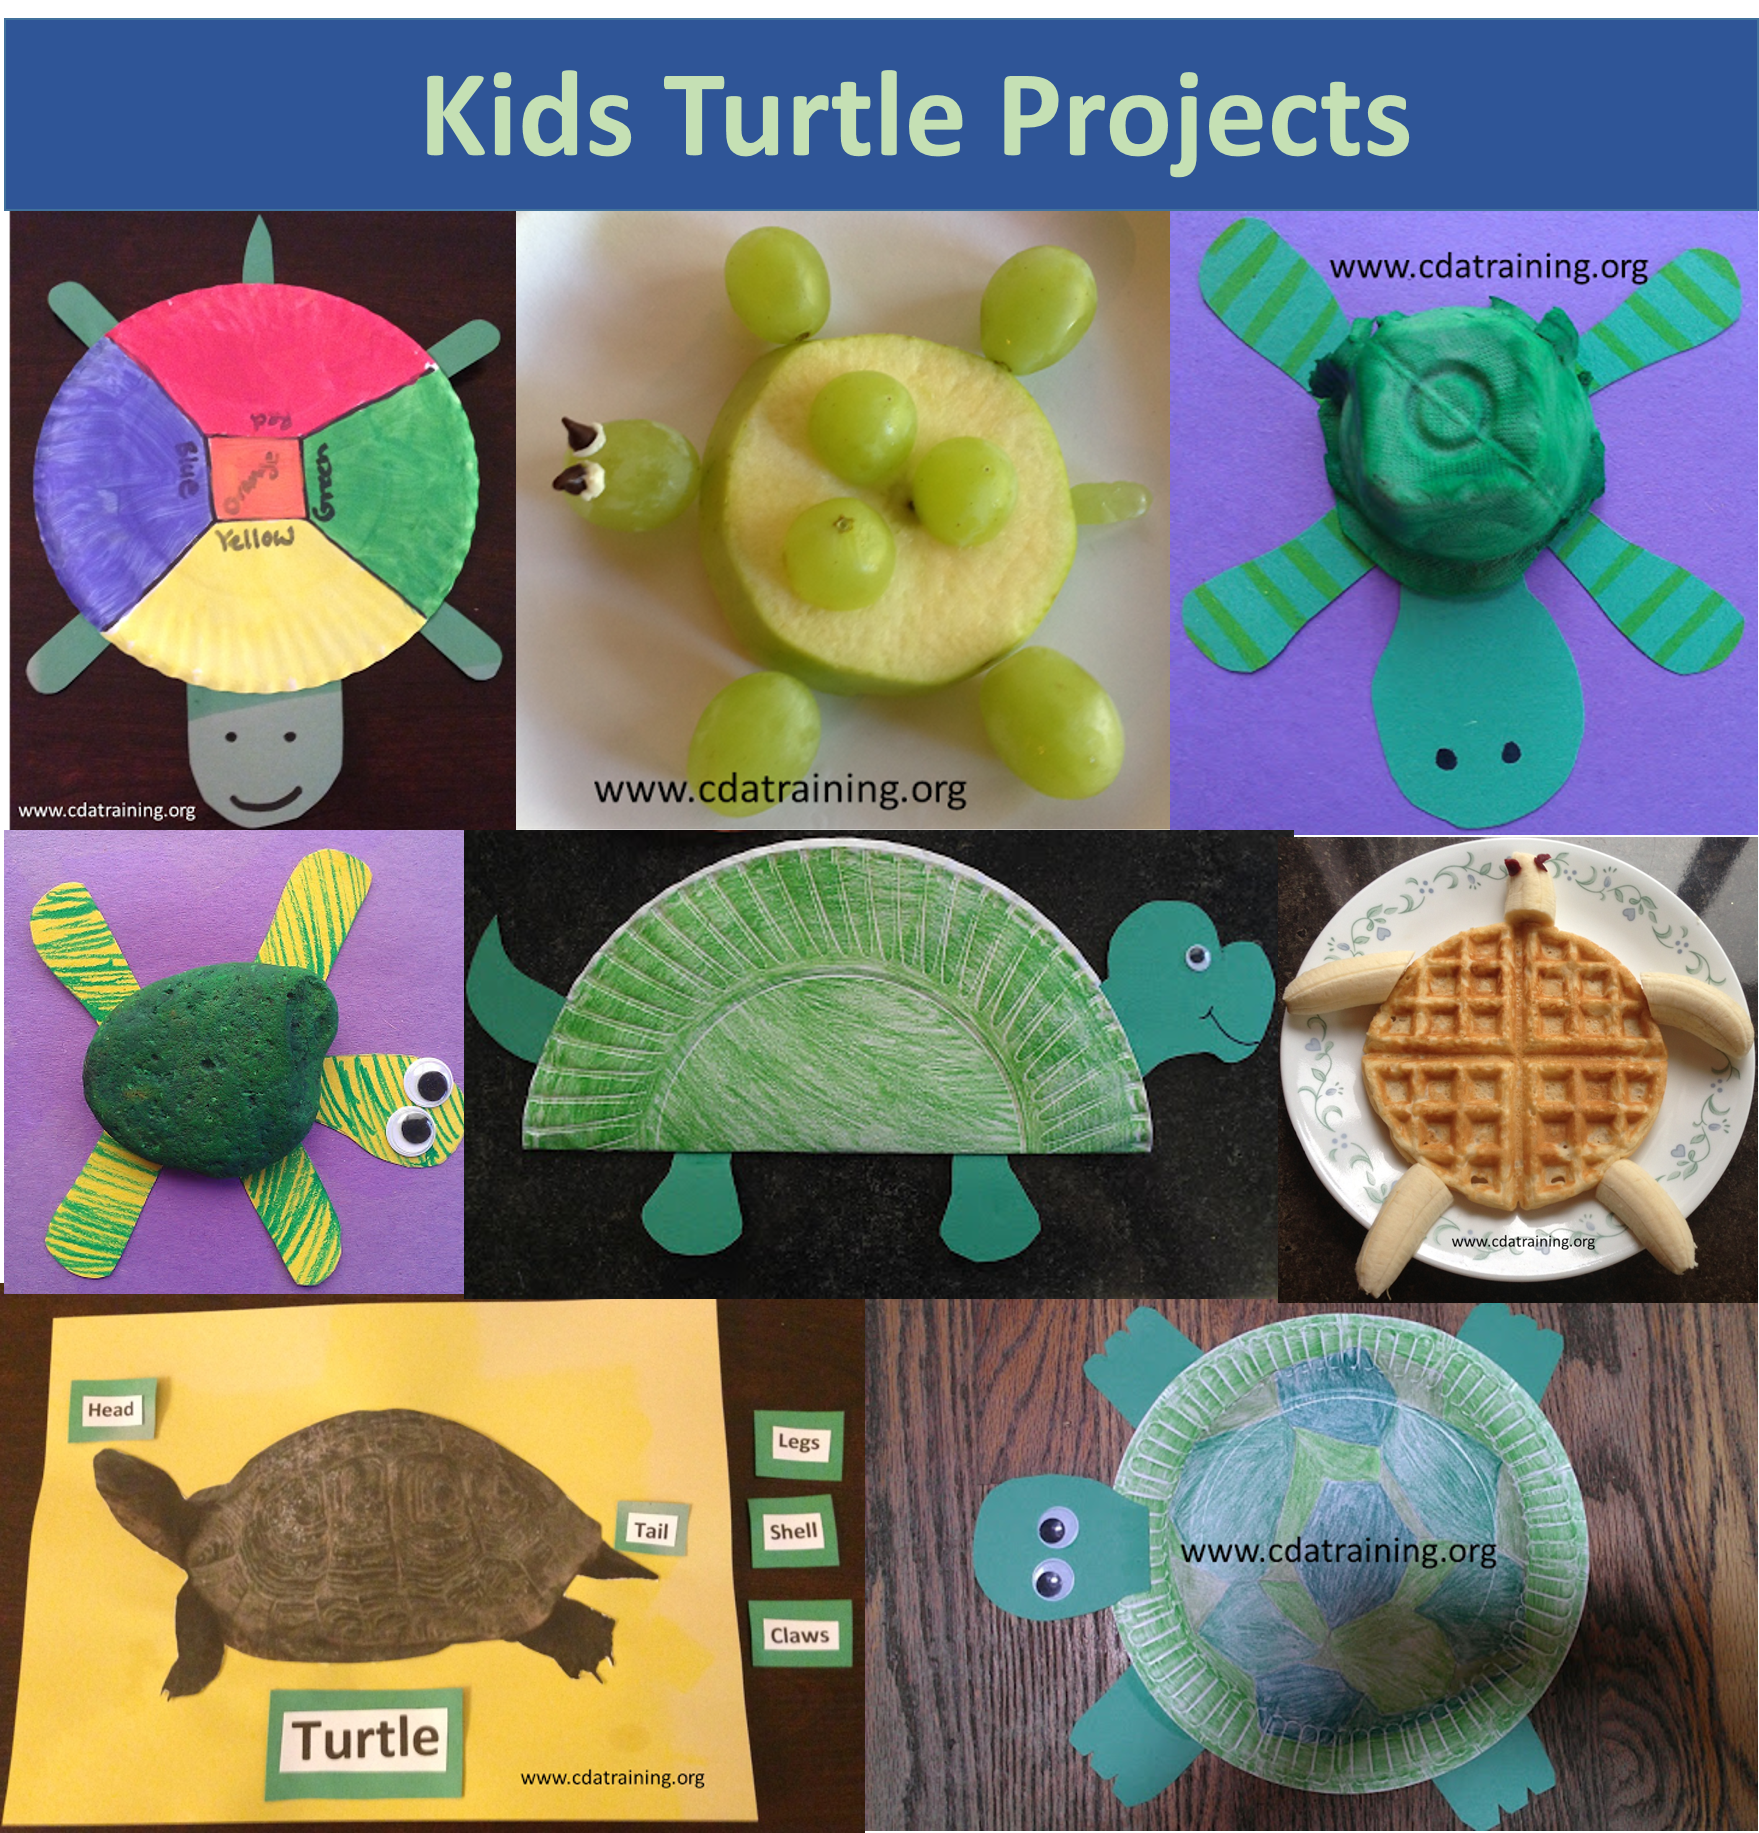 Kids Turtle Projects